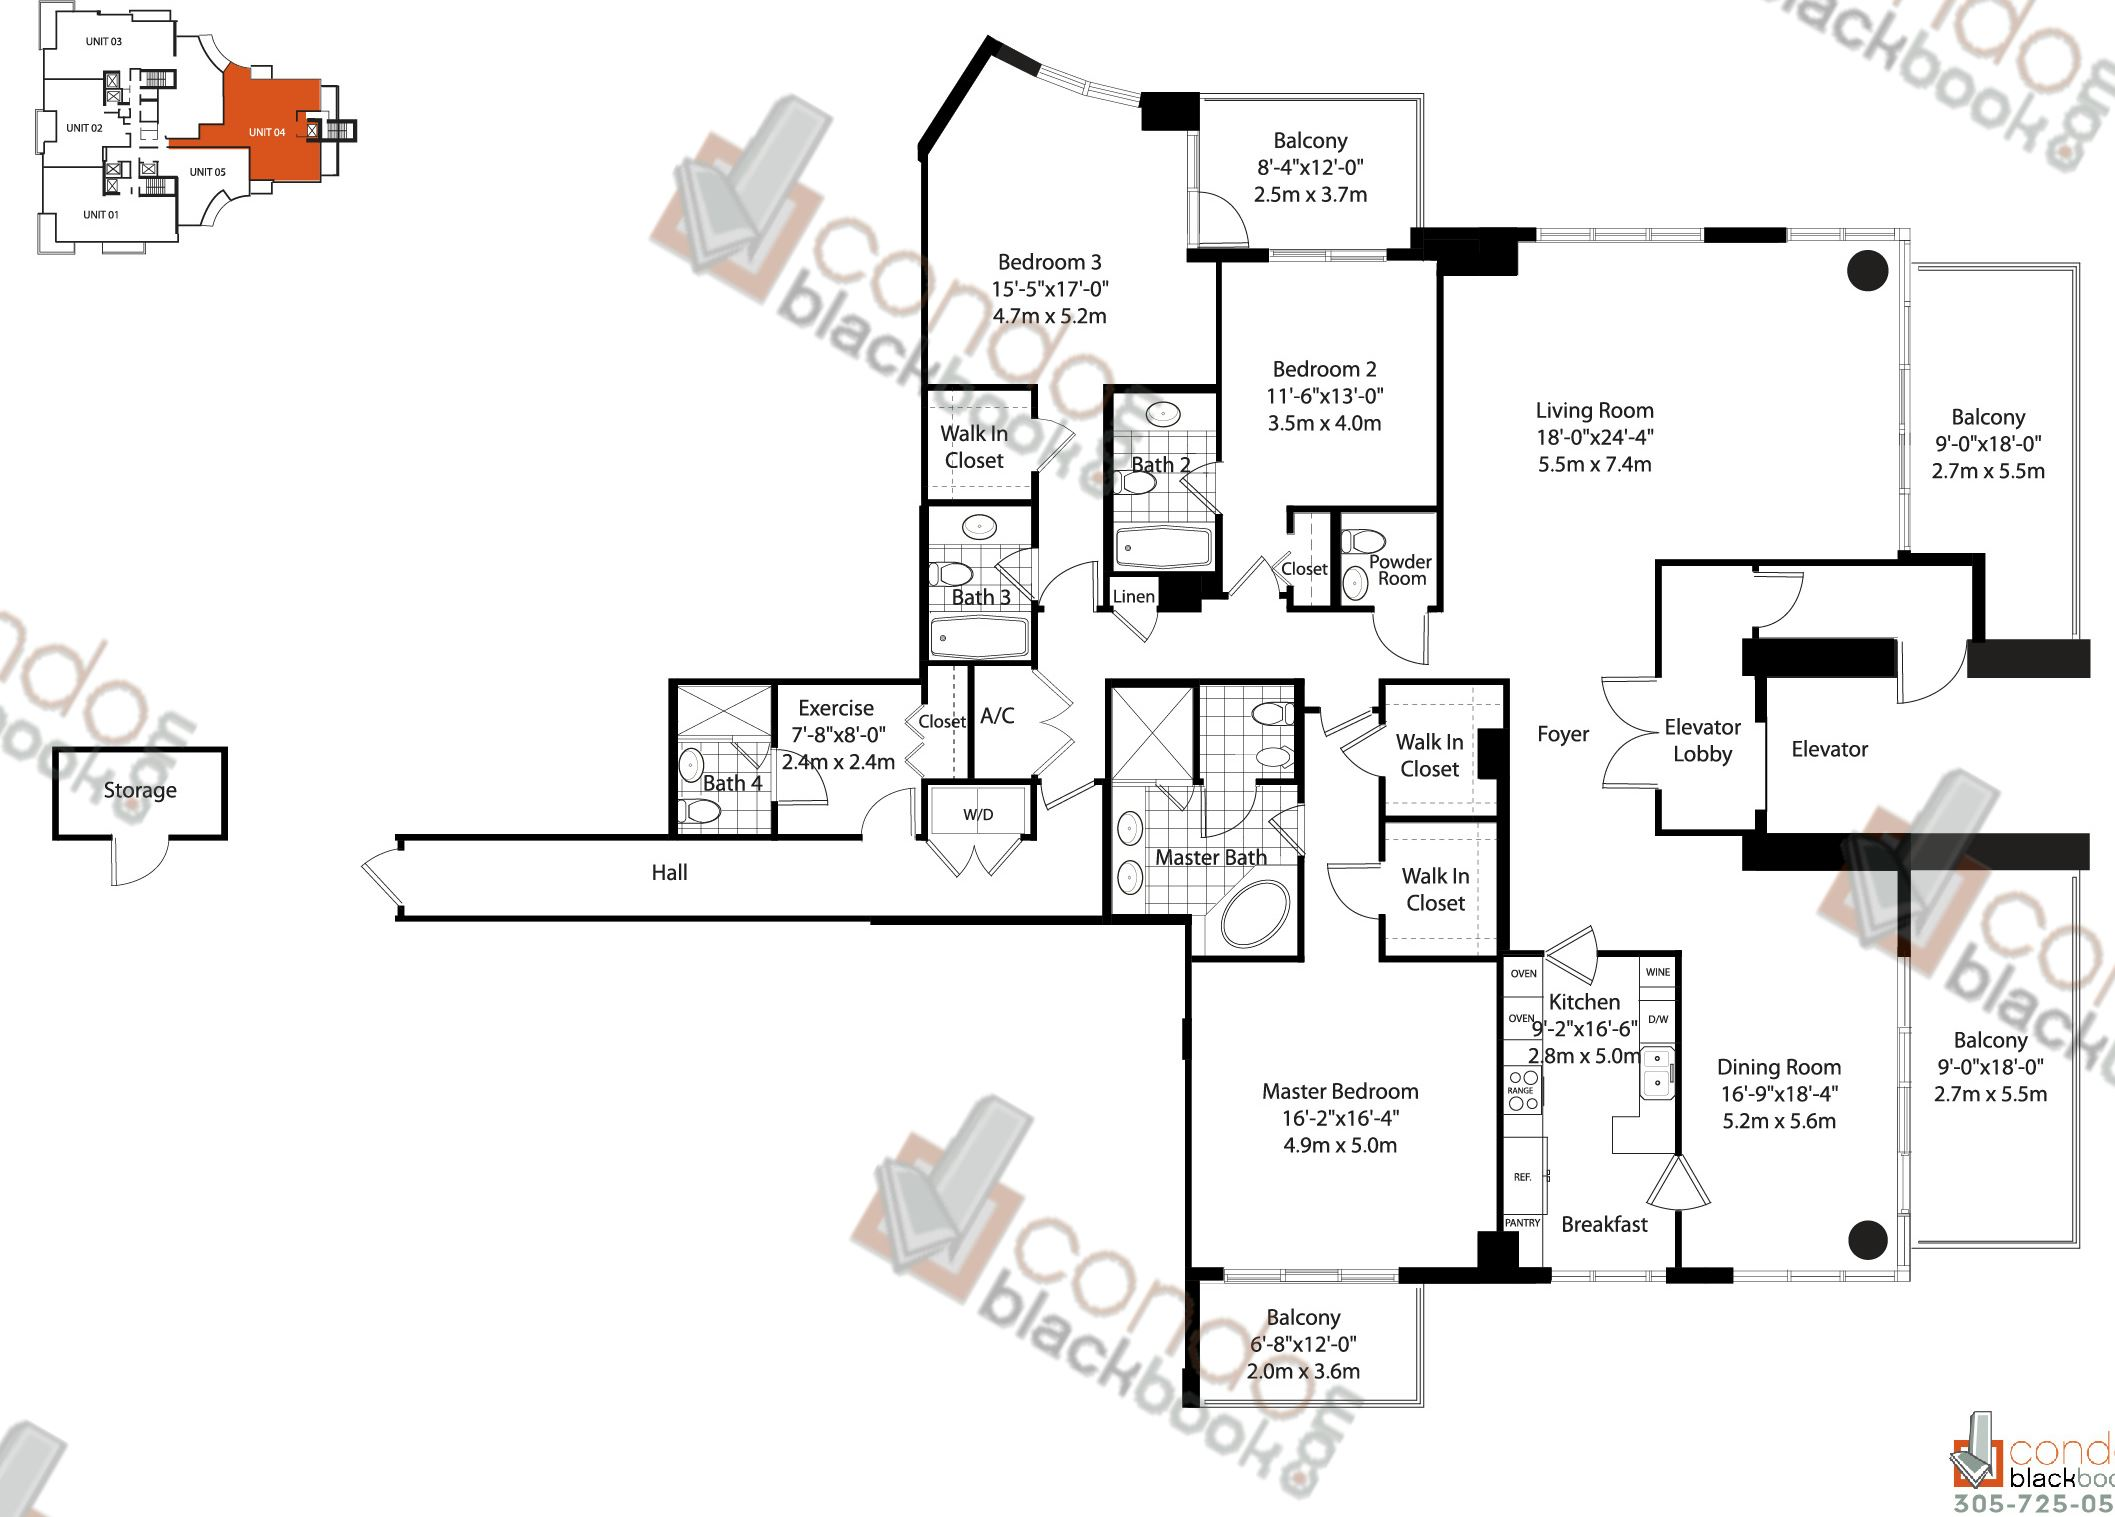 Floor plan for Asia Brickell Key Miami, model Unit 04, line 04, 3/4,5 bedrooms, 3,452 sq ft